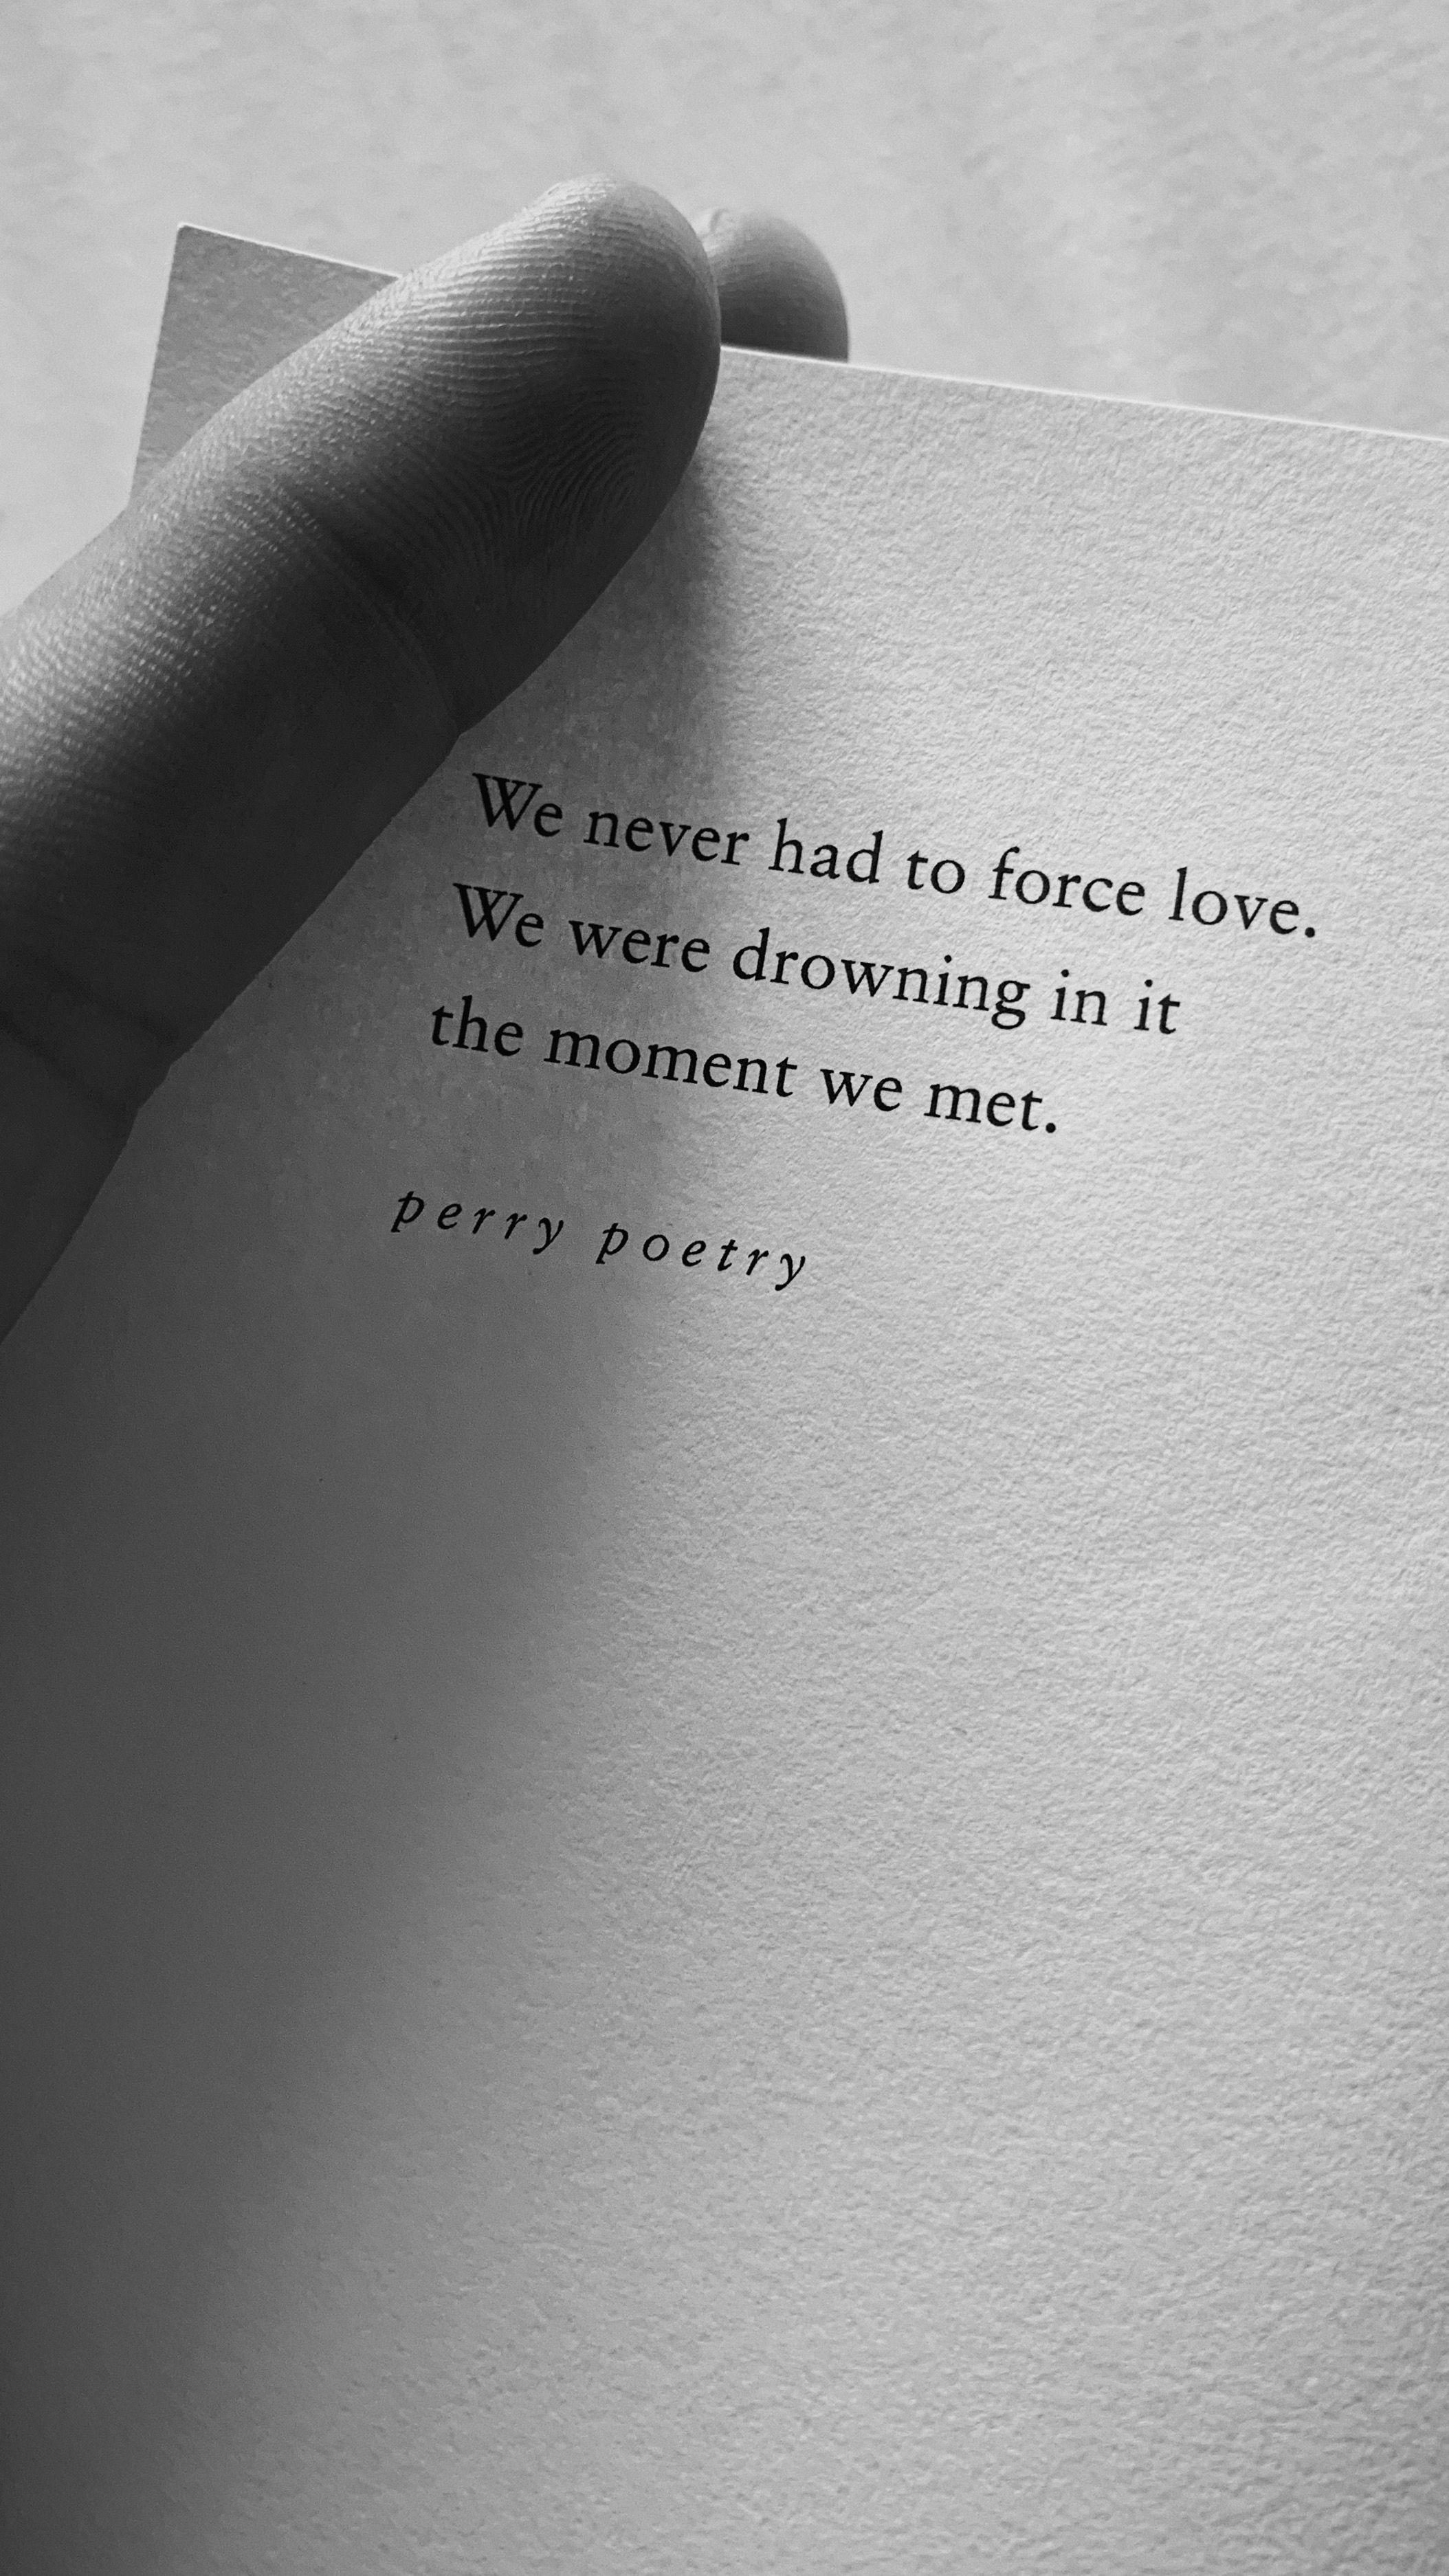 Follow Perrypoetry On Instagram For Daily Poetry Poem Poetry Poems Quotes Love Perrypoetry Lovequotes Typewriter W Quotes Inspirational Quotes Words